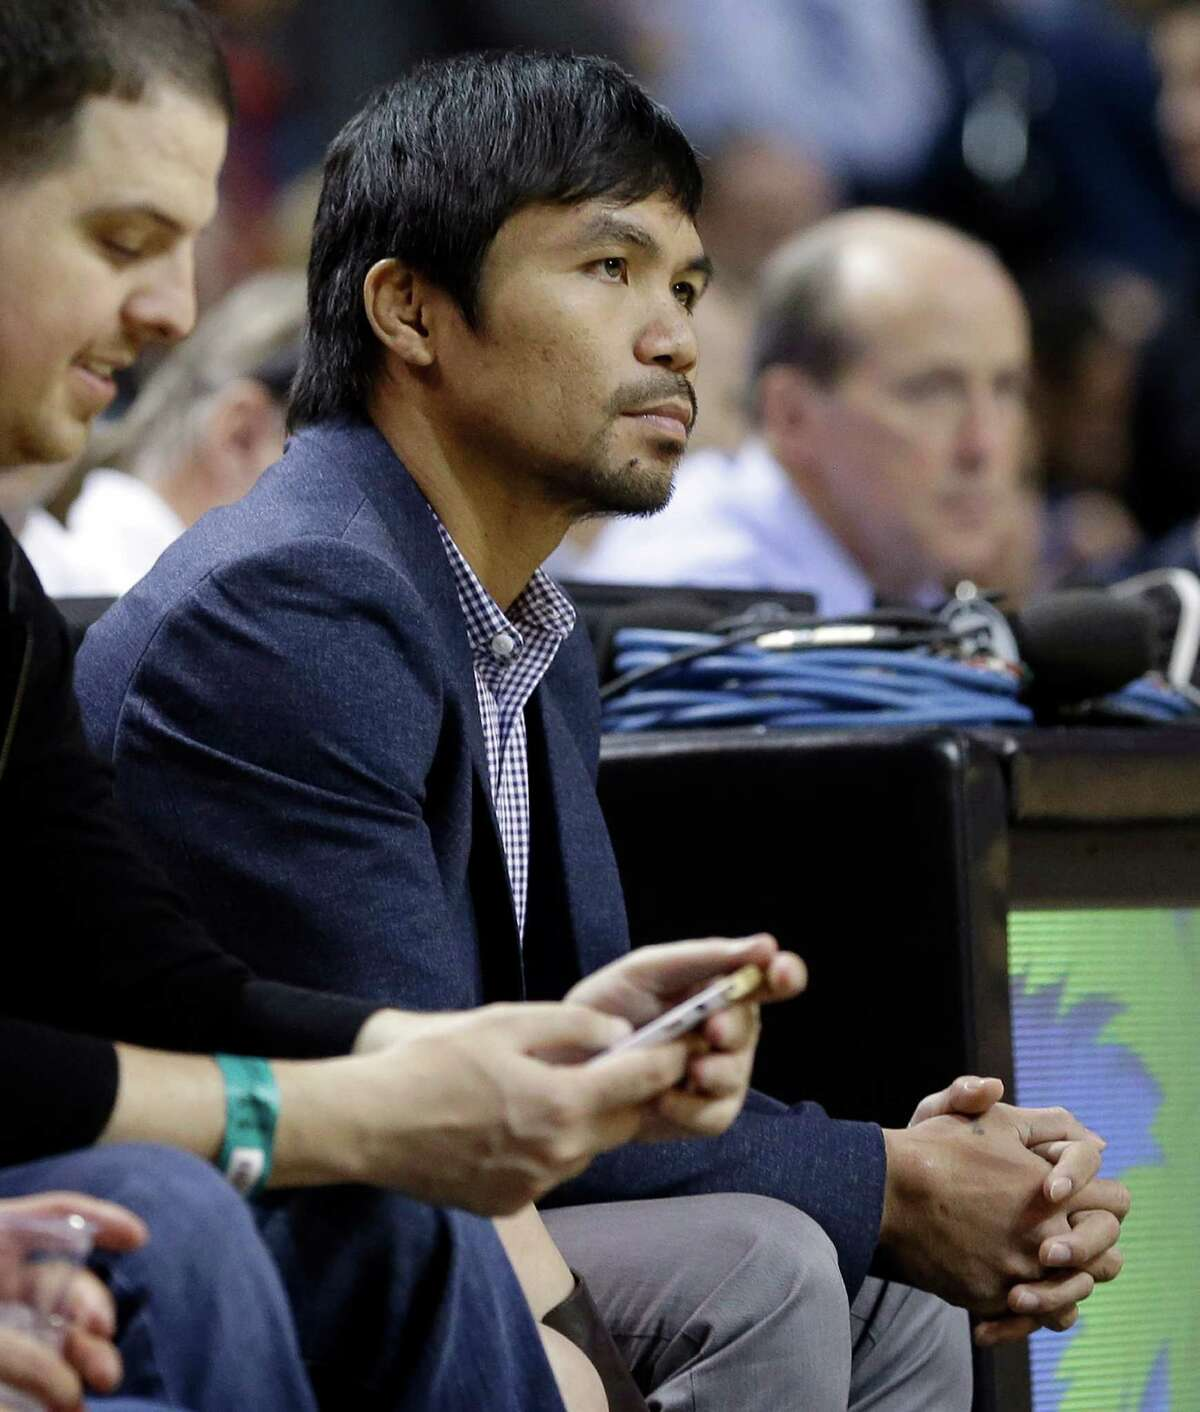 Boxer Manny Pacquiao watches the NBA game between the Heat and the Milwaukee Bucks during the first half on Jan. 27, 2015, in Miami.